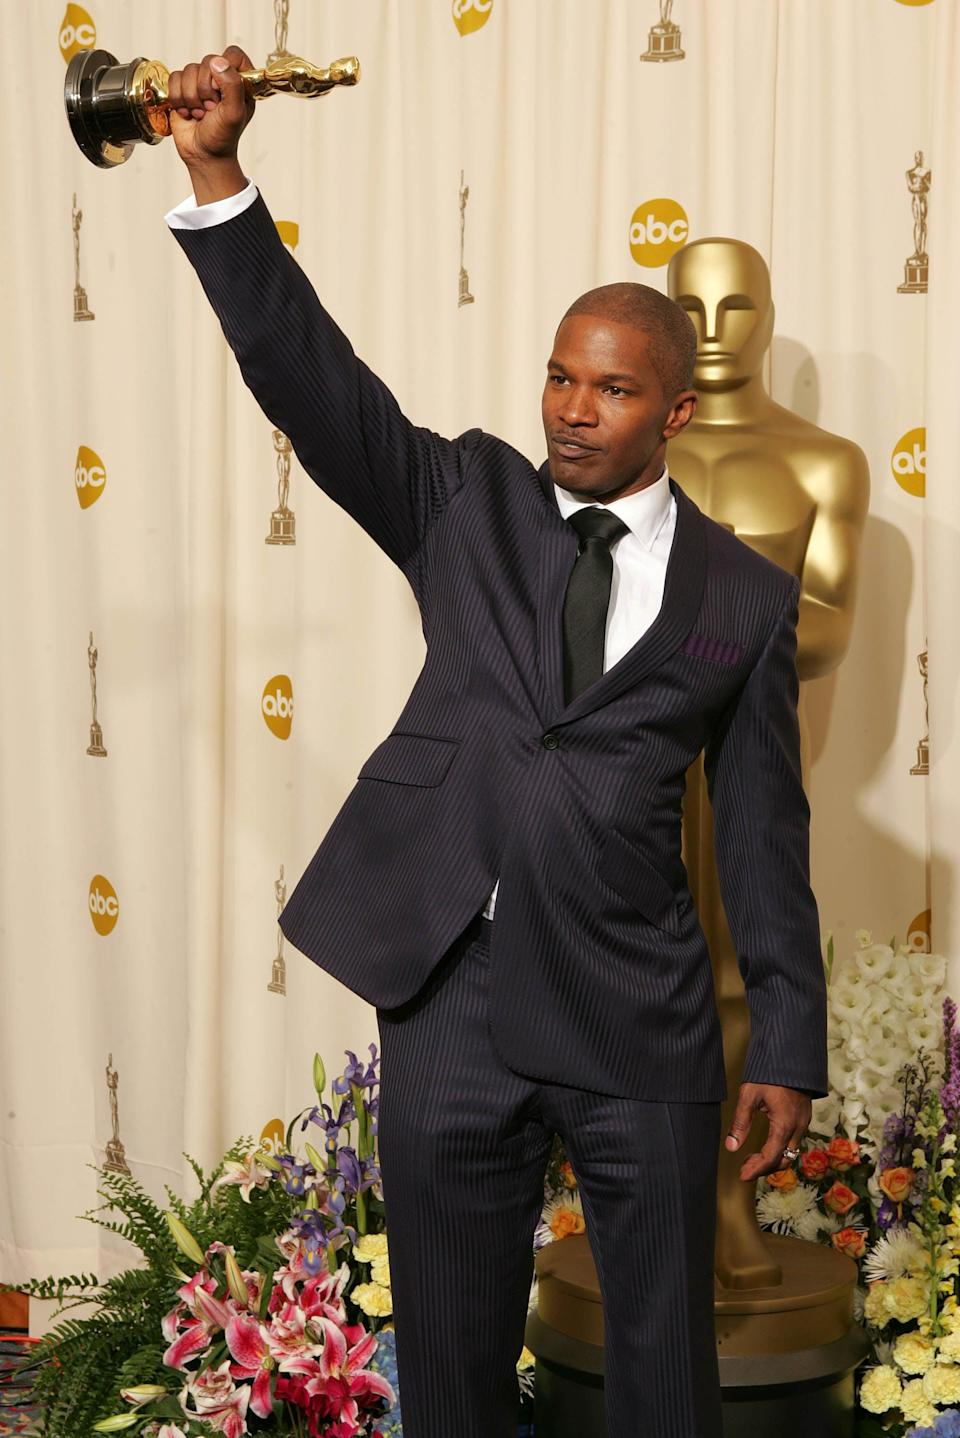 """<ul> <li><strong>Has:</strong> An Oscar for his role in <strong>Ray</strong> and two Grammys for """"Gold Digger"""" and """"Blame It""""</li> <li><strong>Needs:</strong> A Tony and an Emmy</li> </ul>"""